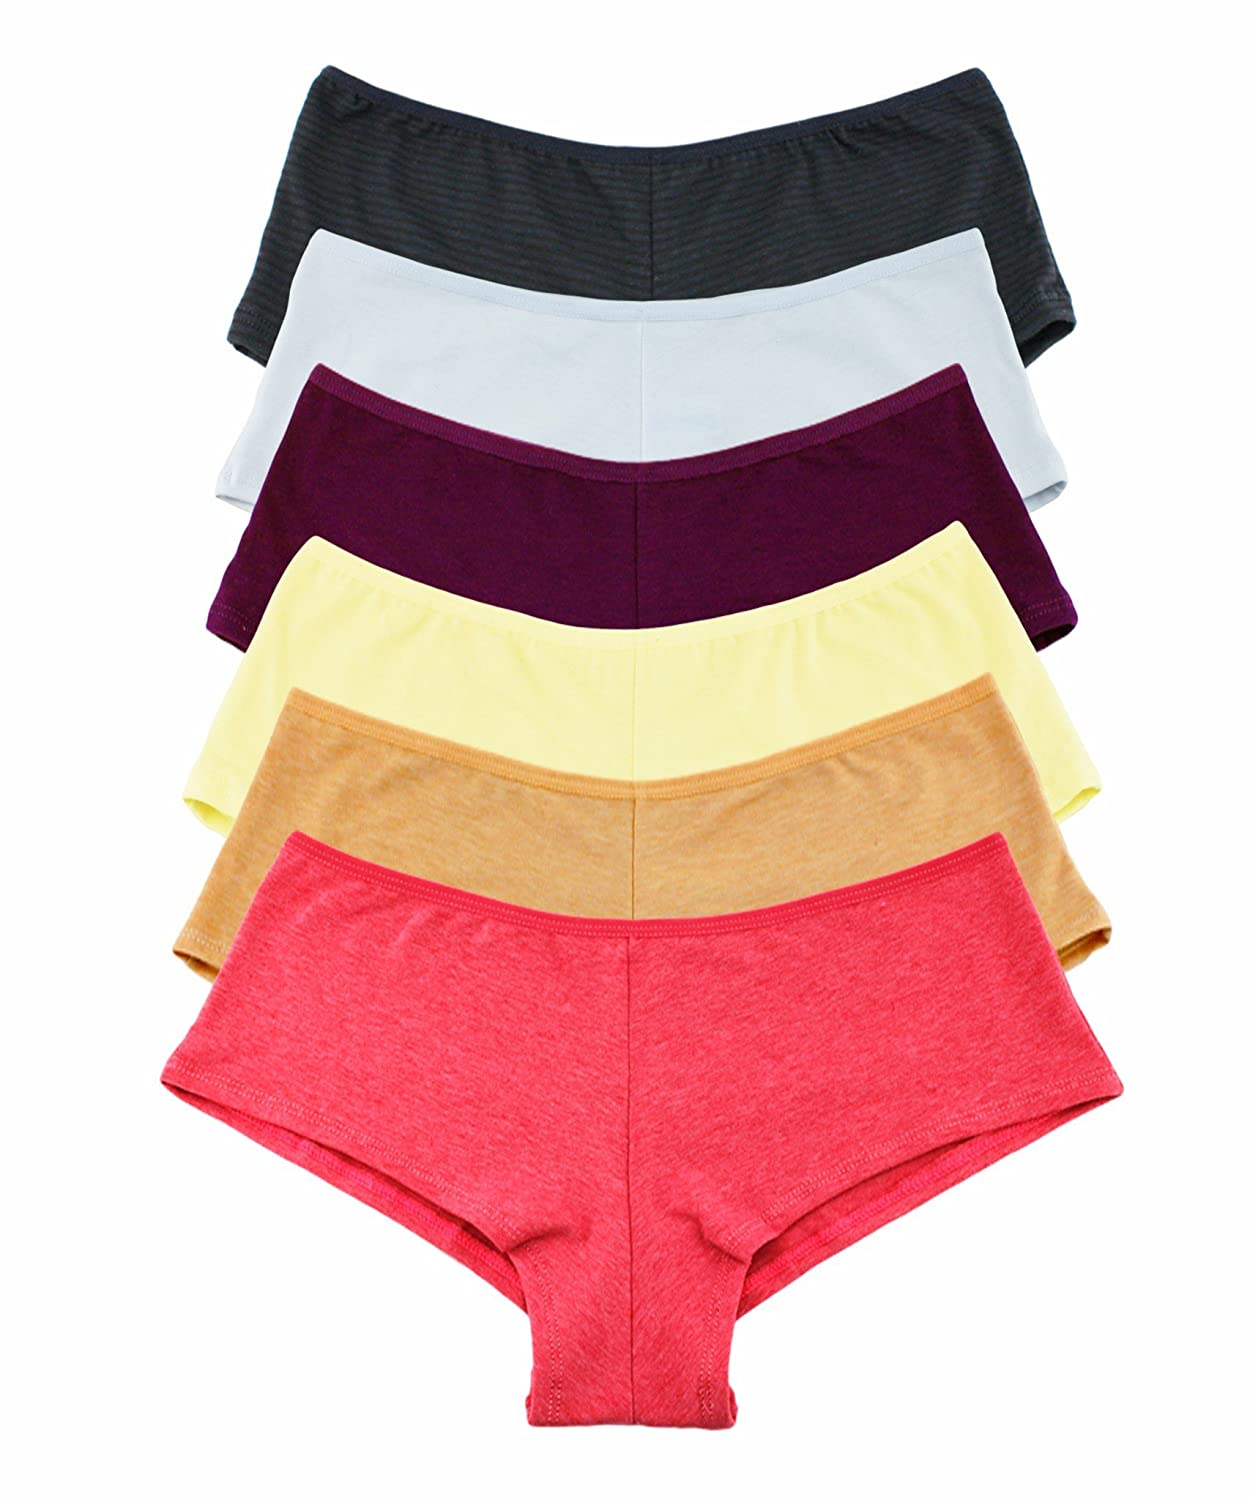 Cheeky boy shorts panties